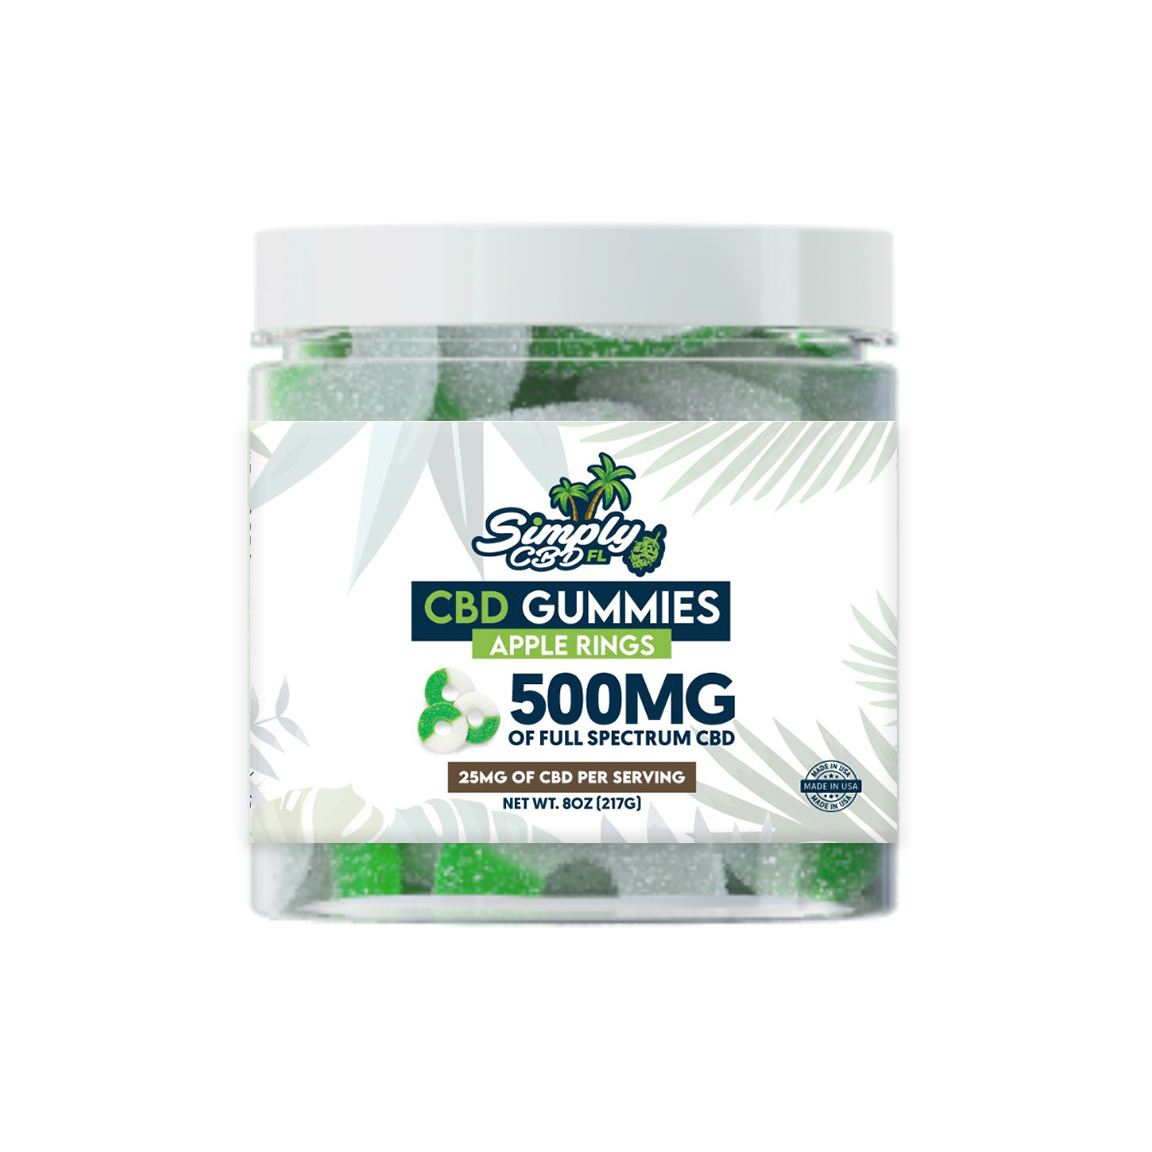 Simply CBD FL 500 MG Full Spectrum CBD Apple Flavored Gummy Rings